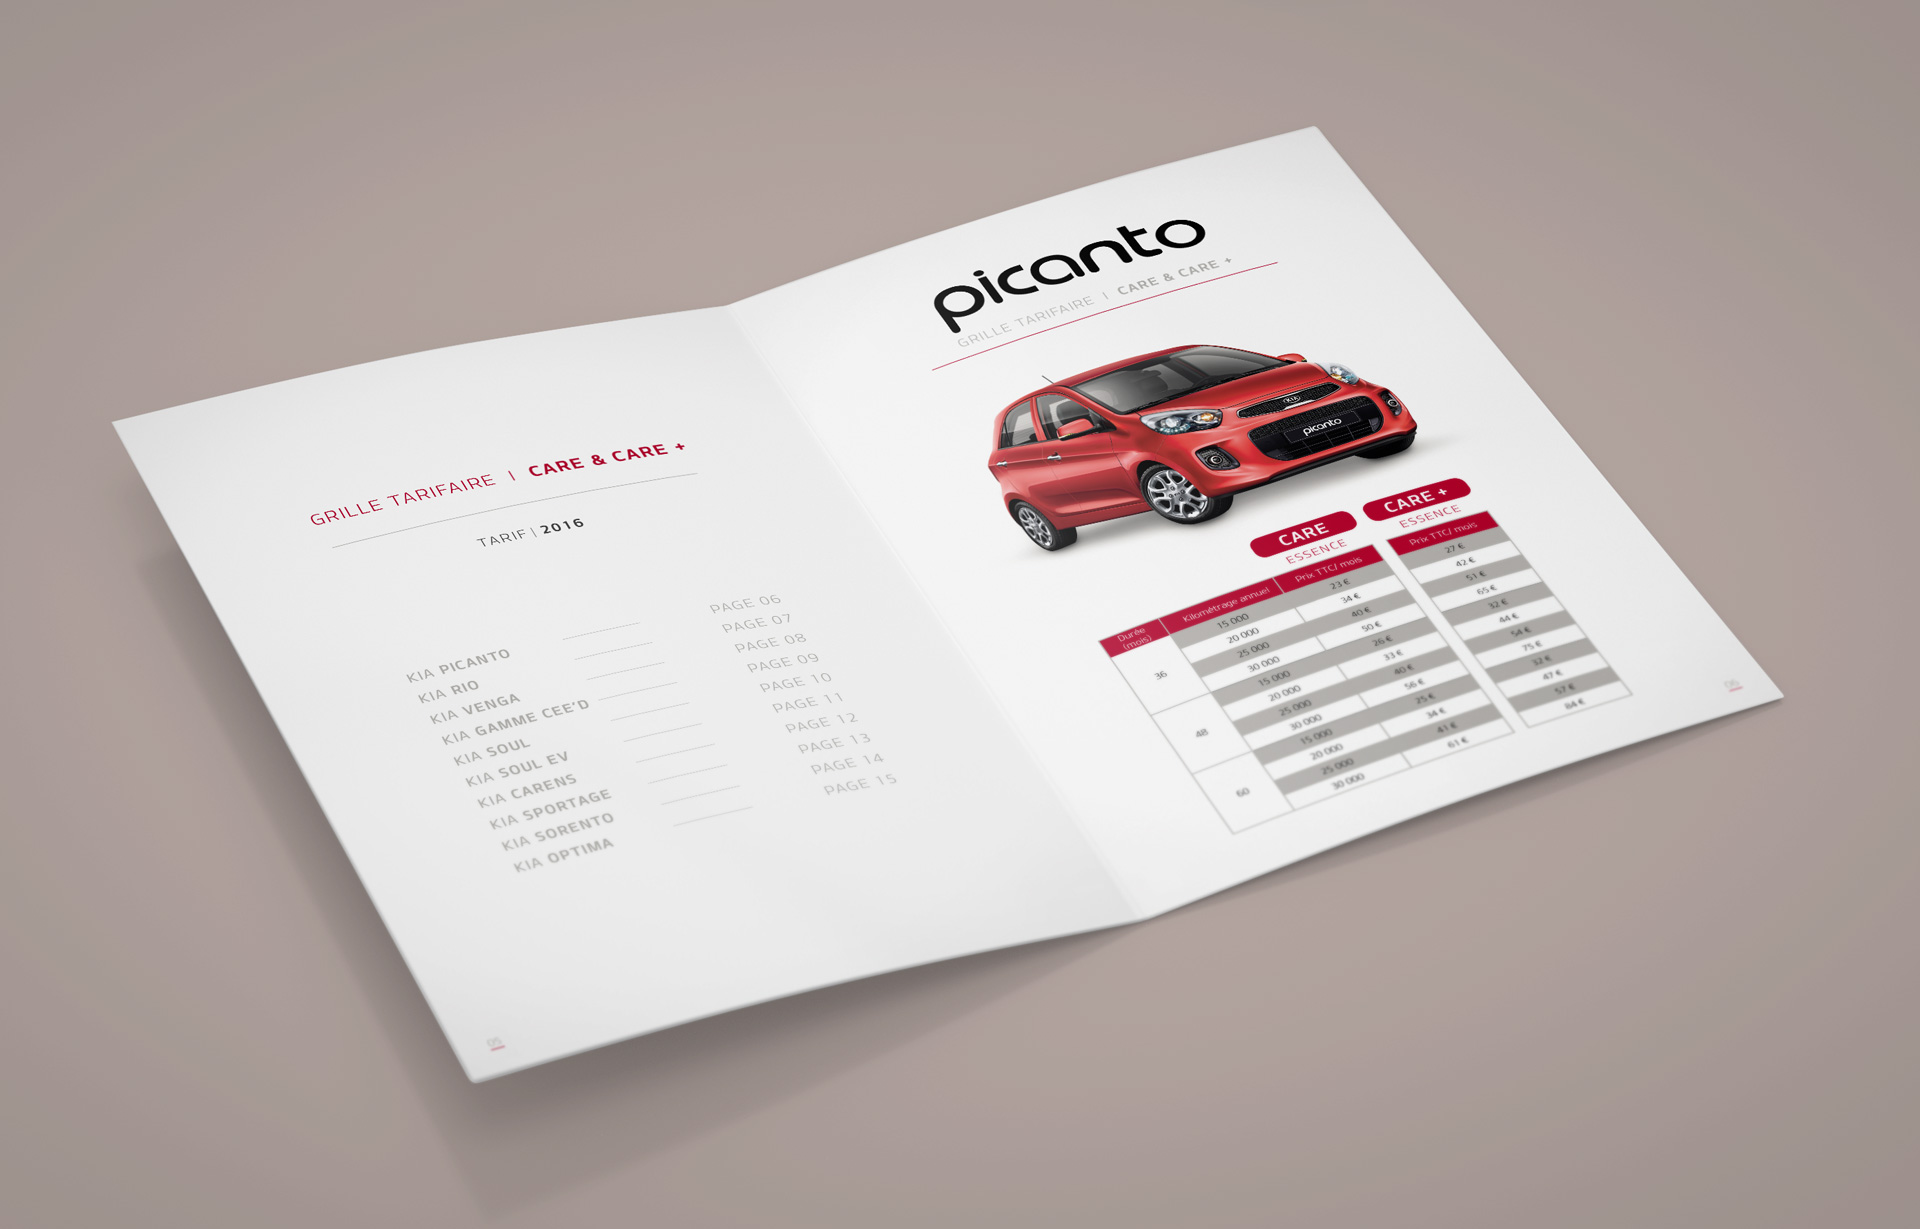 Georgeon-et-associes_agence-creation-print_kia_care-brochure_02